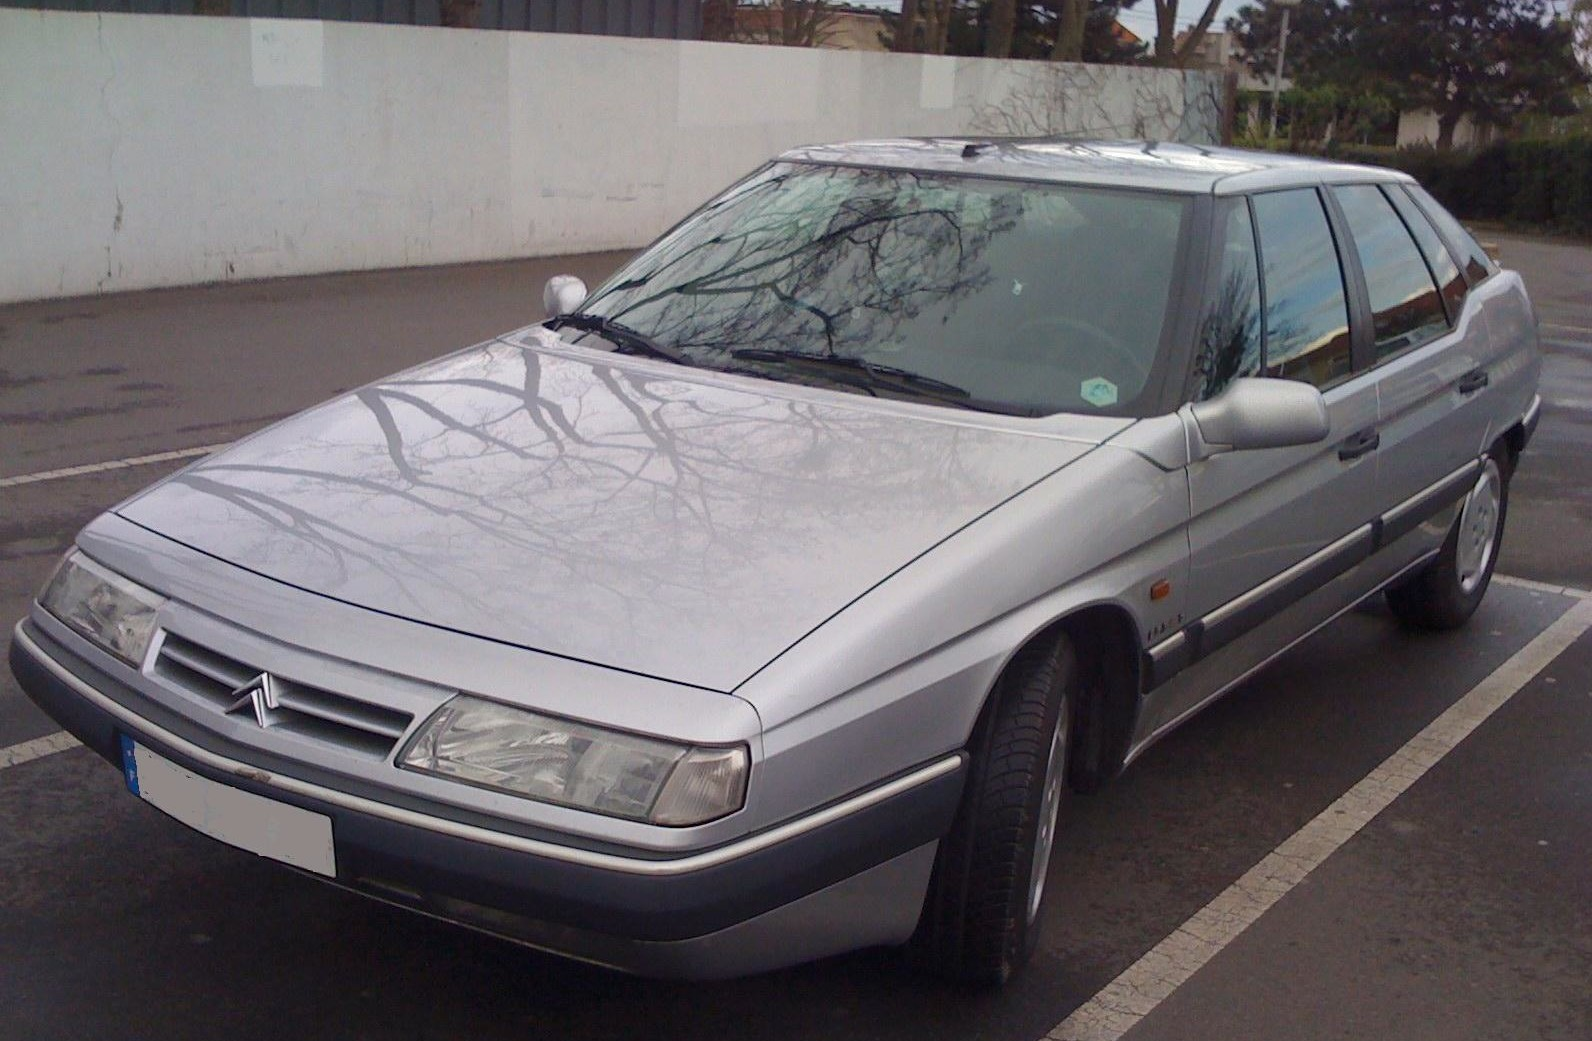 grise avg CITROEN-XM-Gris clair-Berline-17158